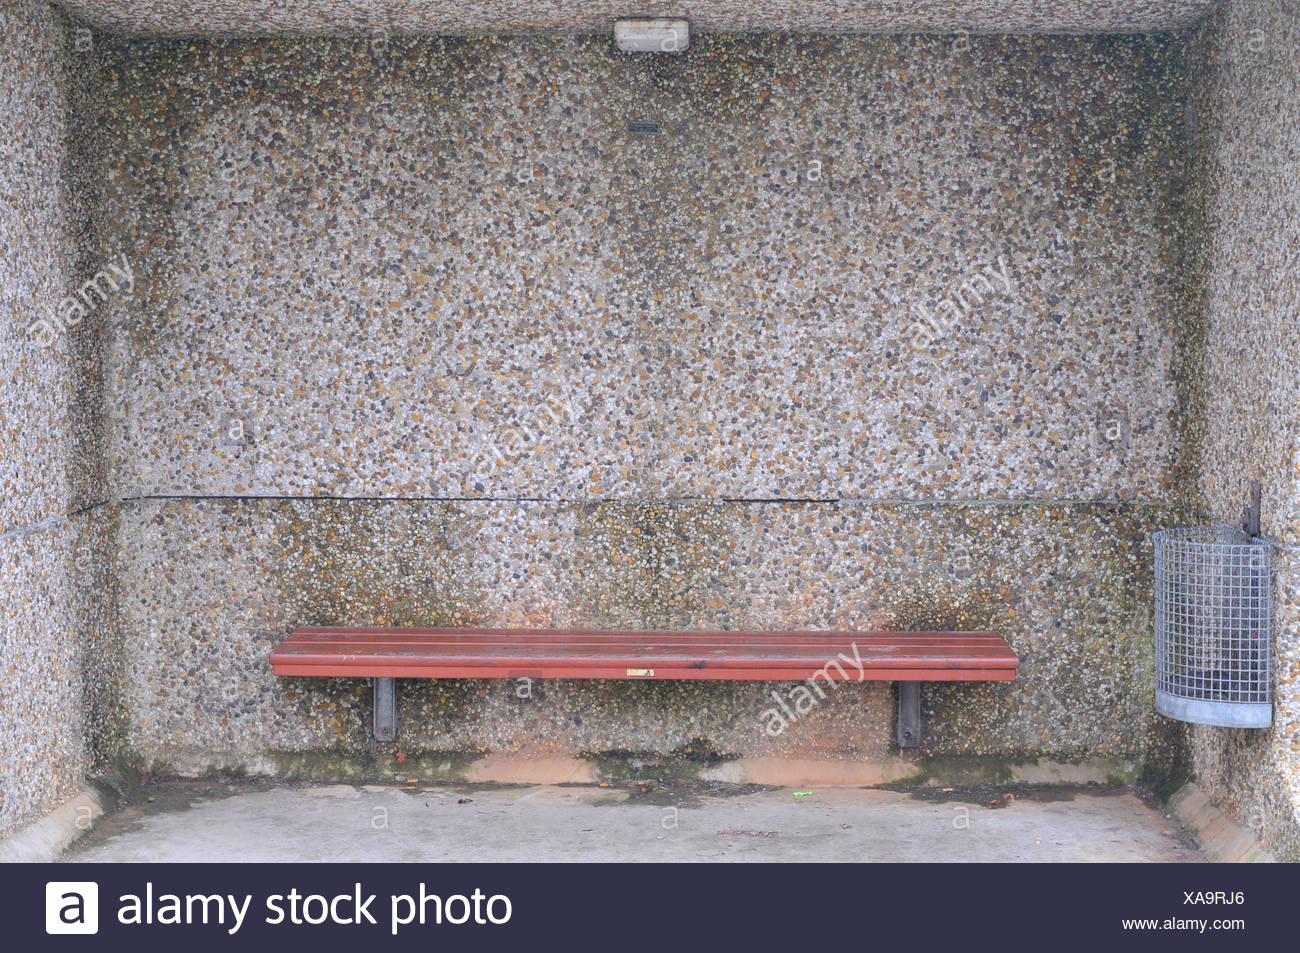 Bus stop from seventies, with bench and garbage can - Stock Image